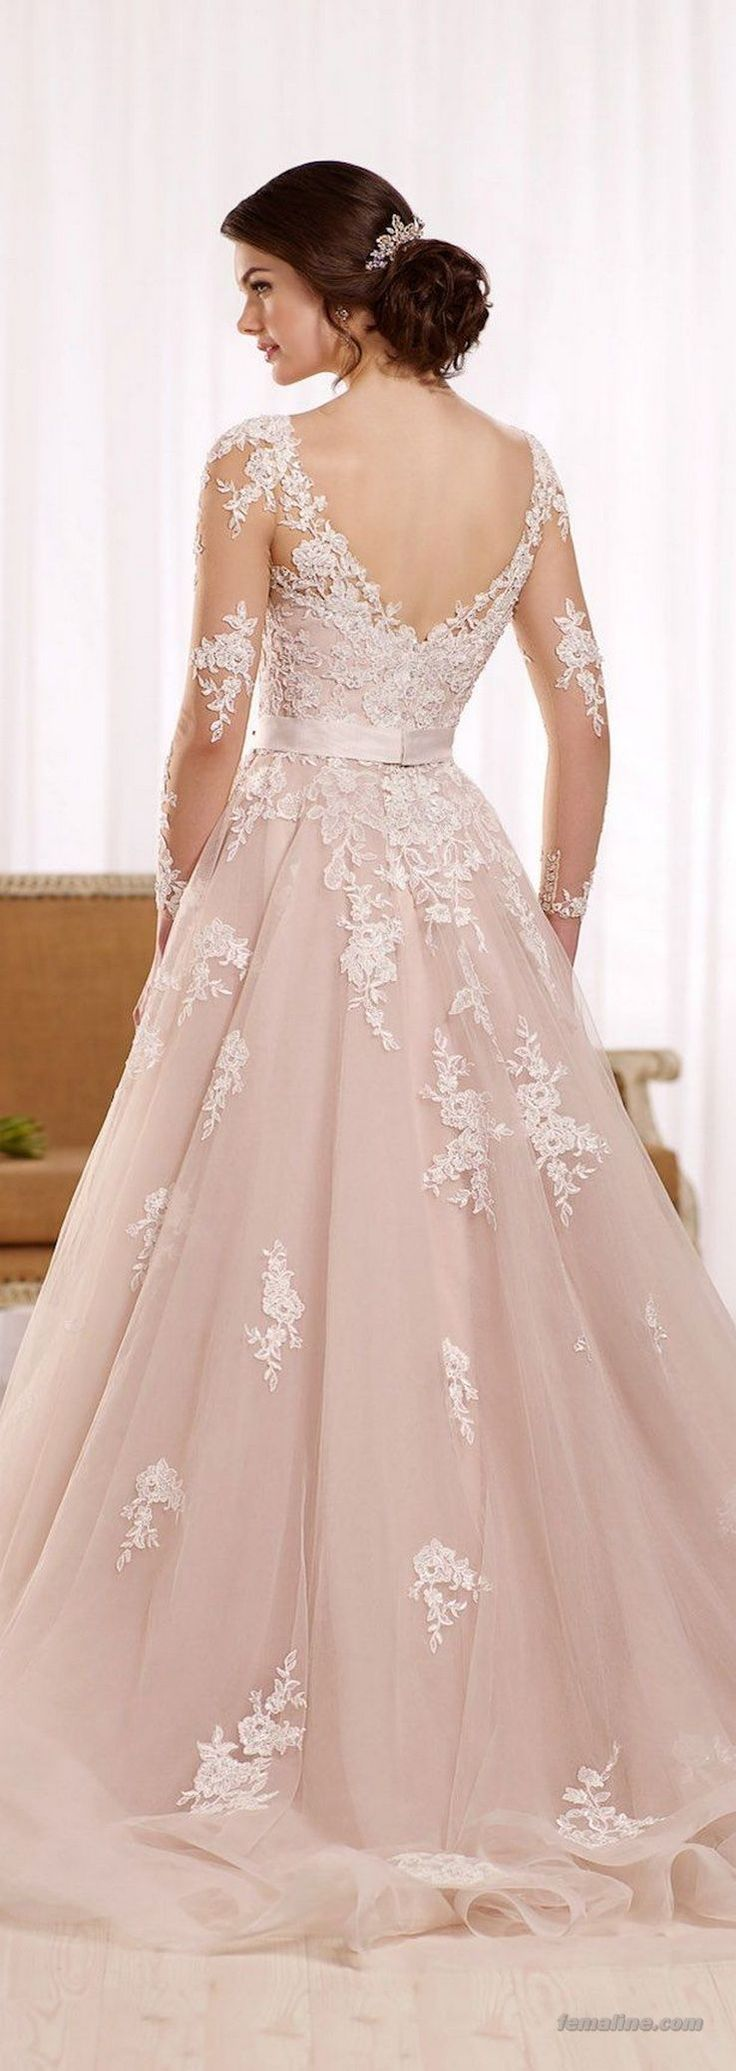 2849 best Gelinlik images on Pinterest | Ball gown, Ballroom dress ...